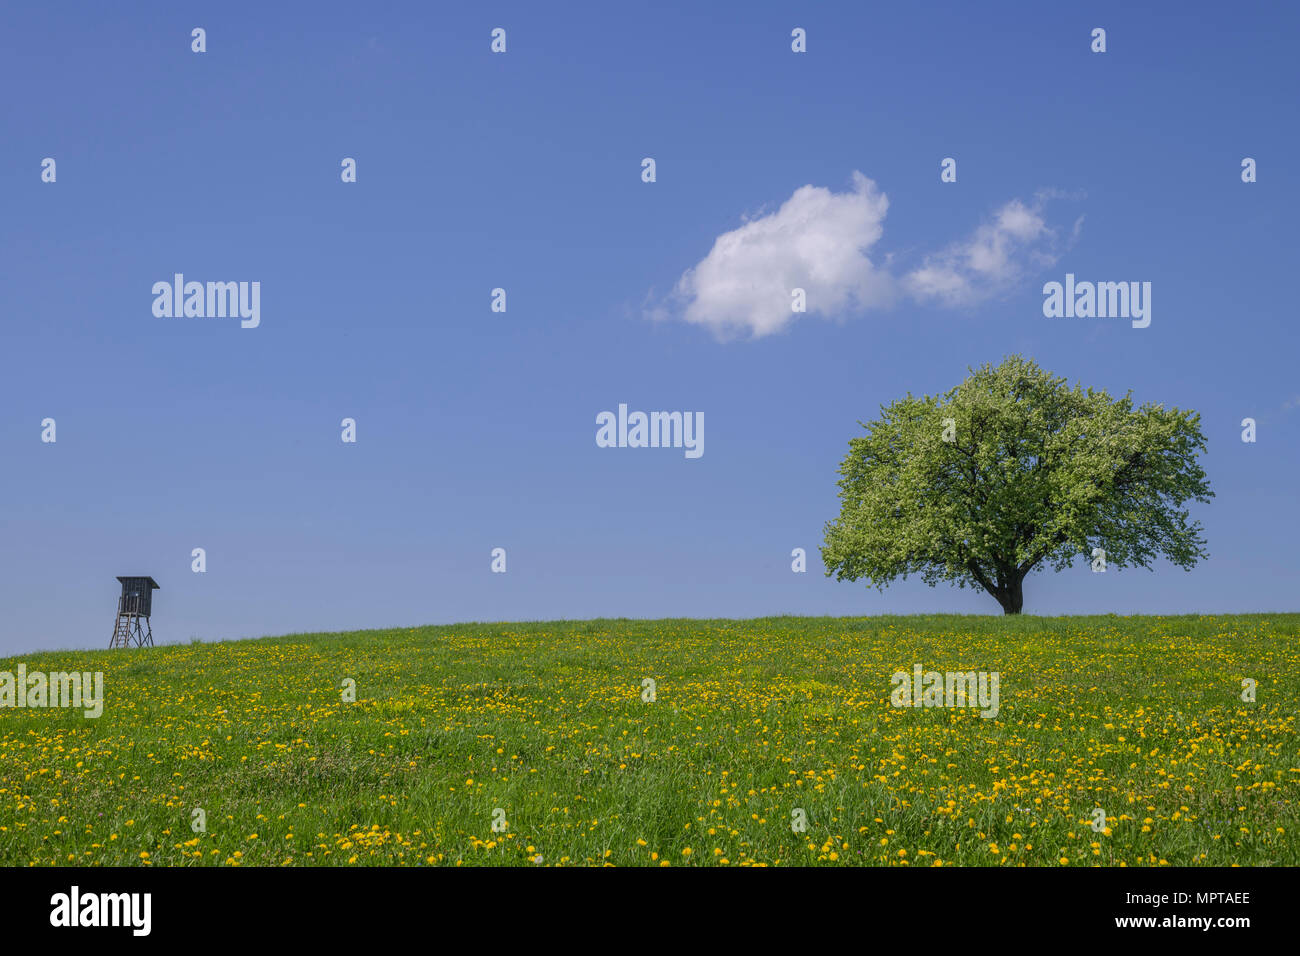 Hunters blind and single fruit tree on dandelion meadow, solitary tree, small cloud in the blue sky, near Nöstach - Stock Image